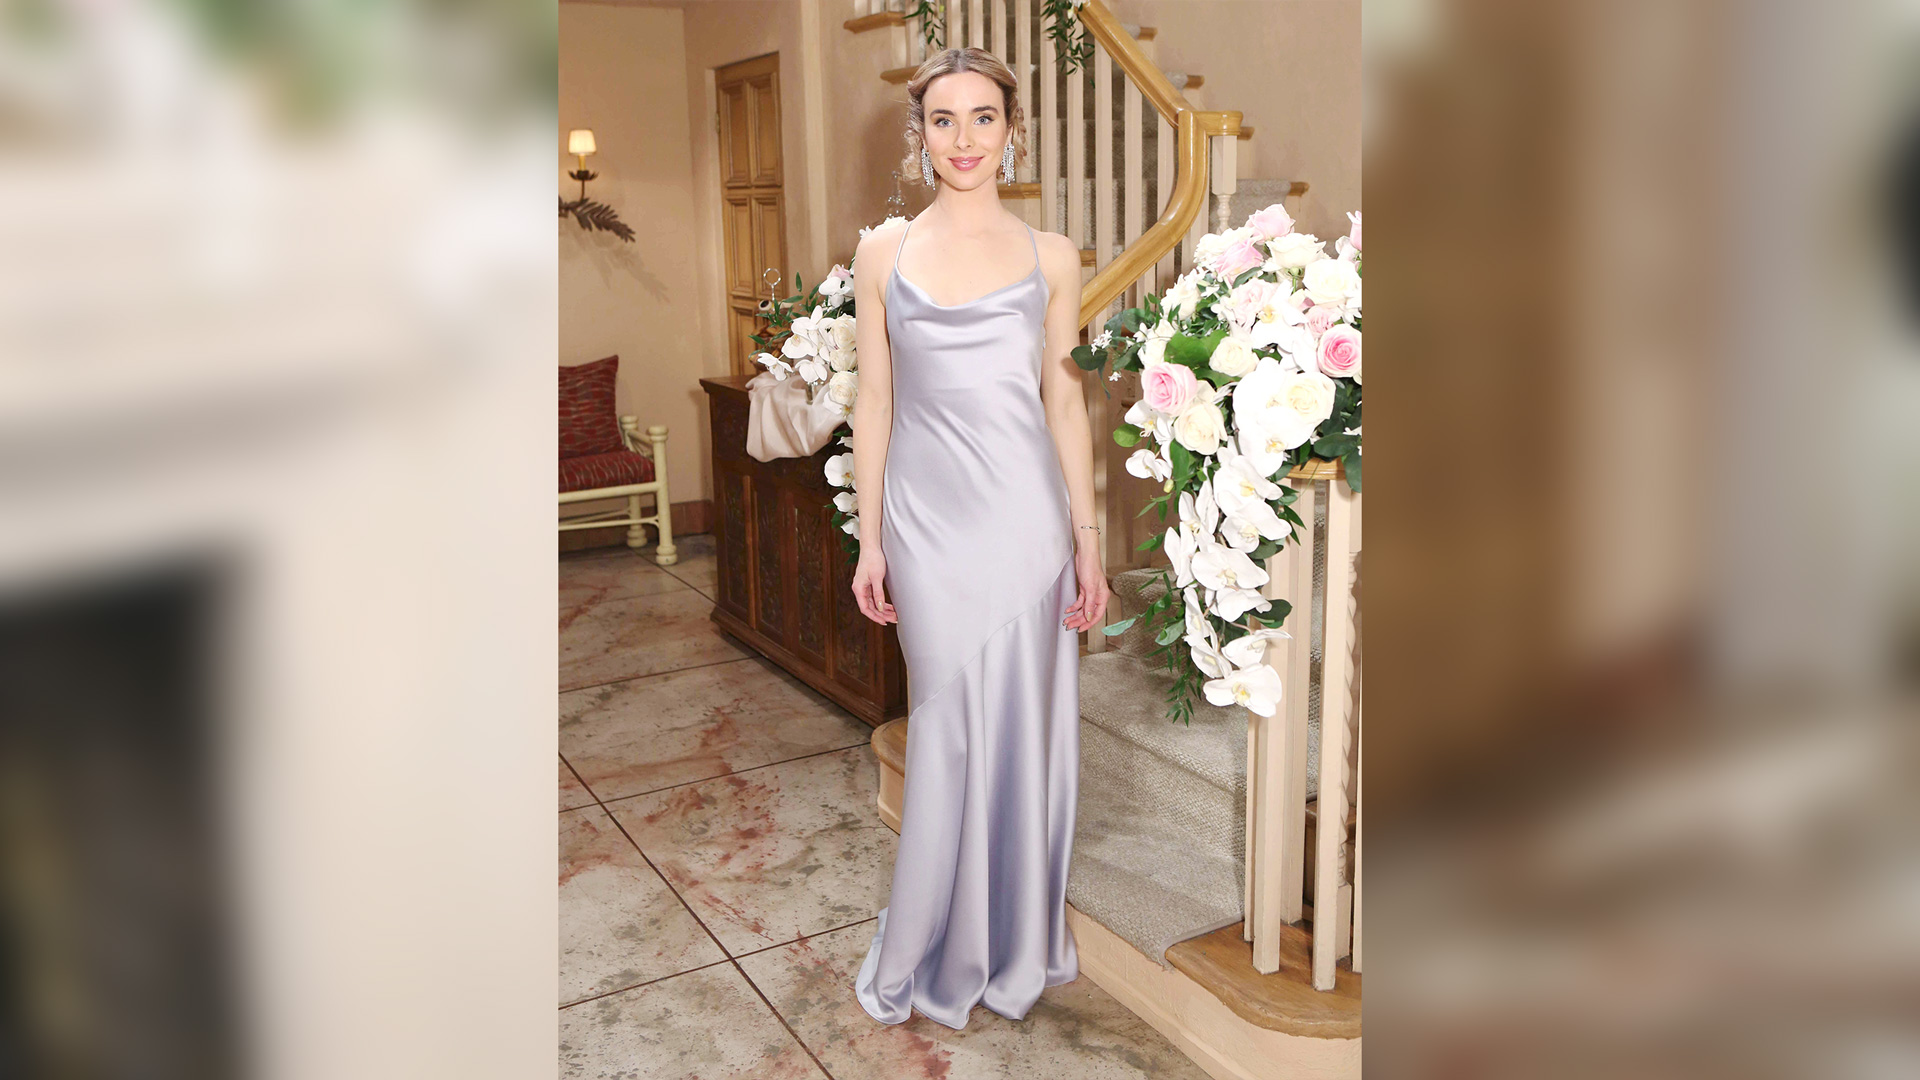 Ivy Forrester (Ashleigh Brewer) in a silky number.